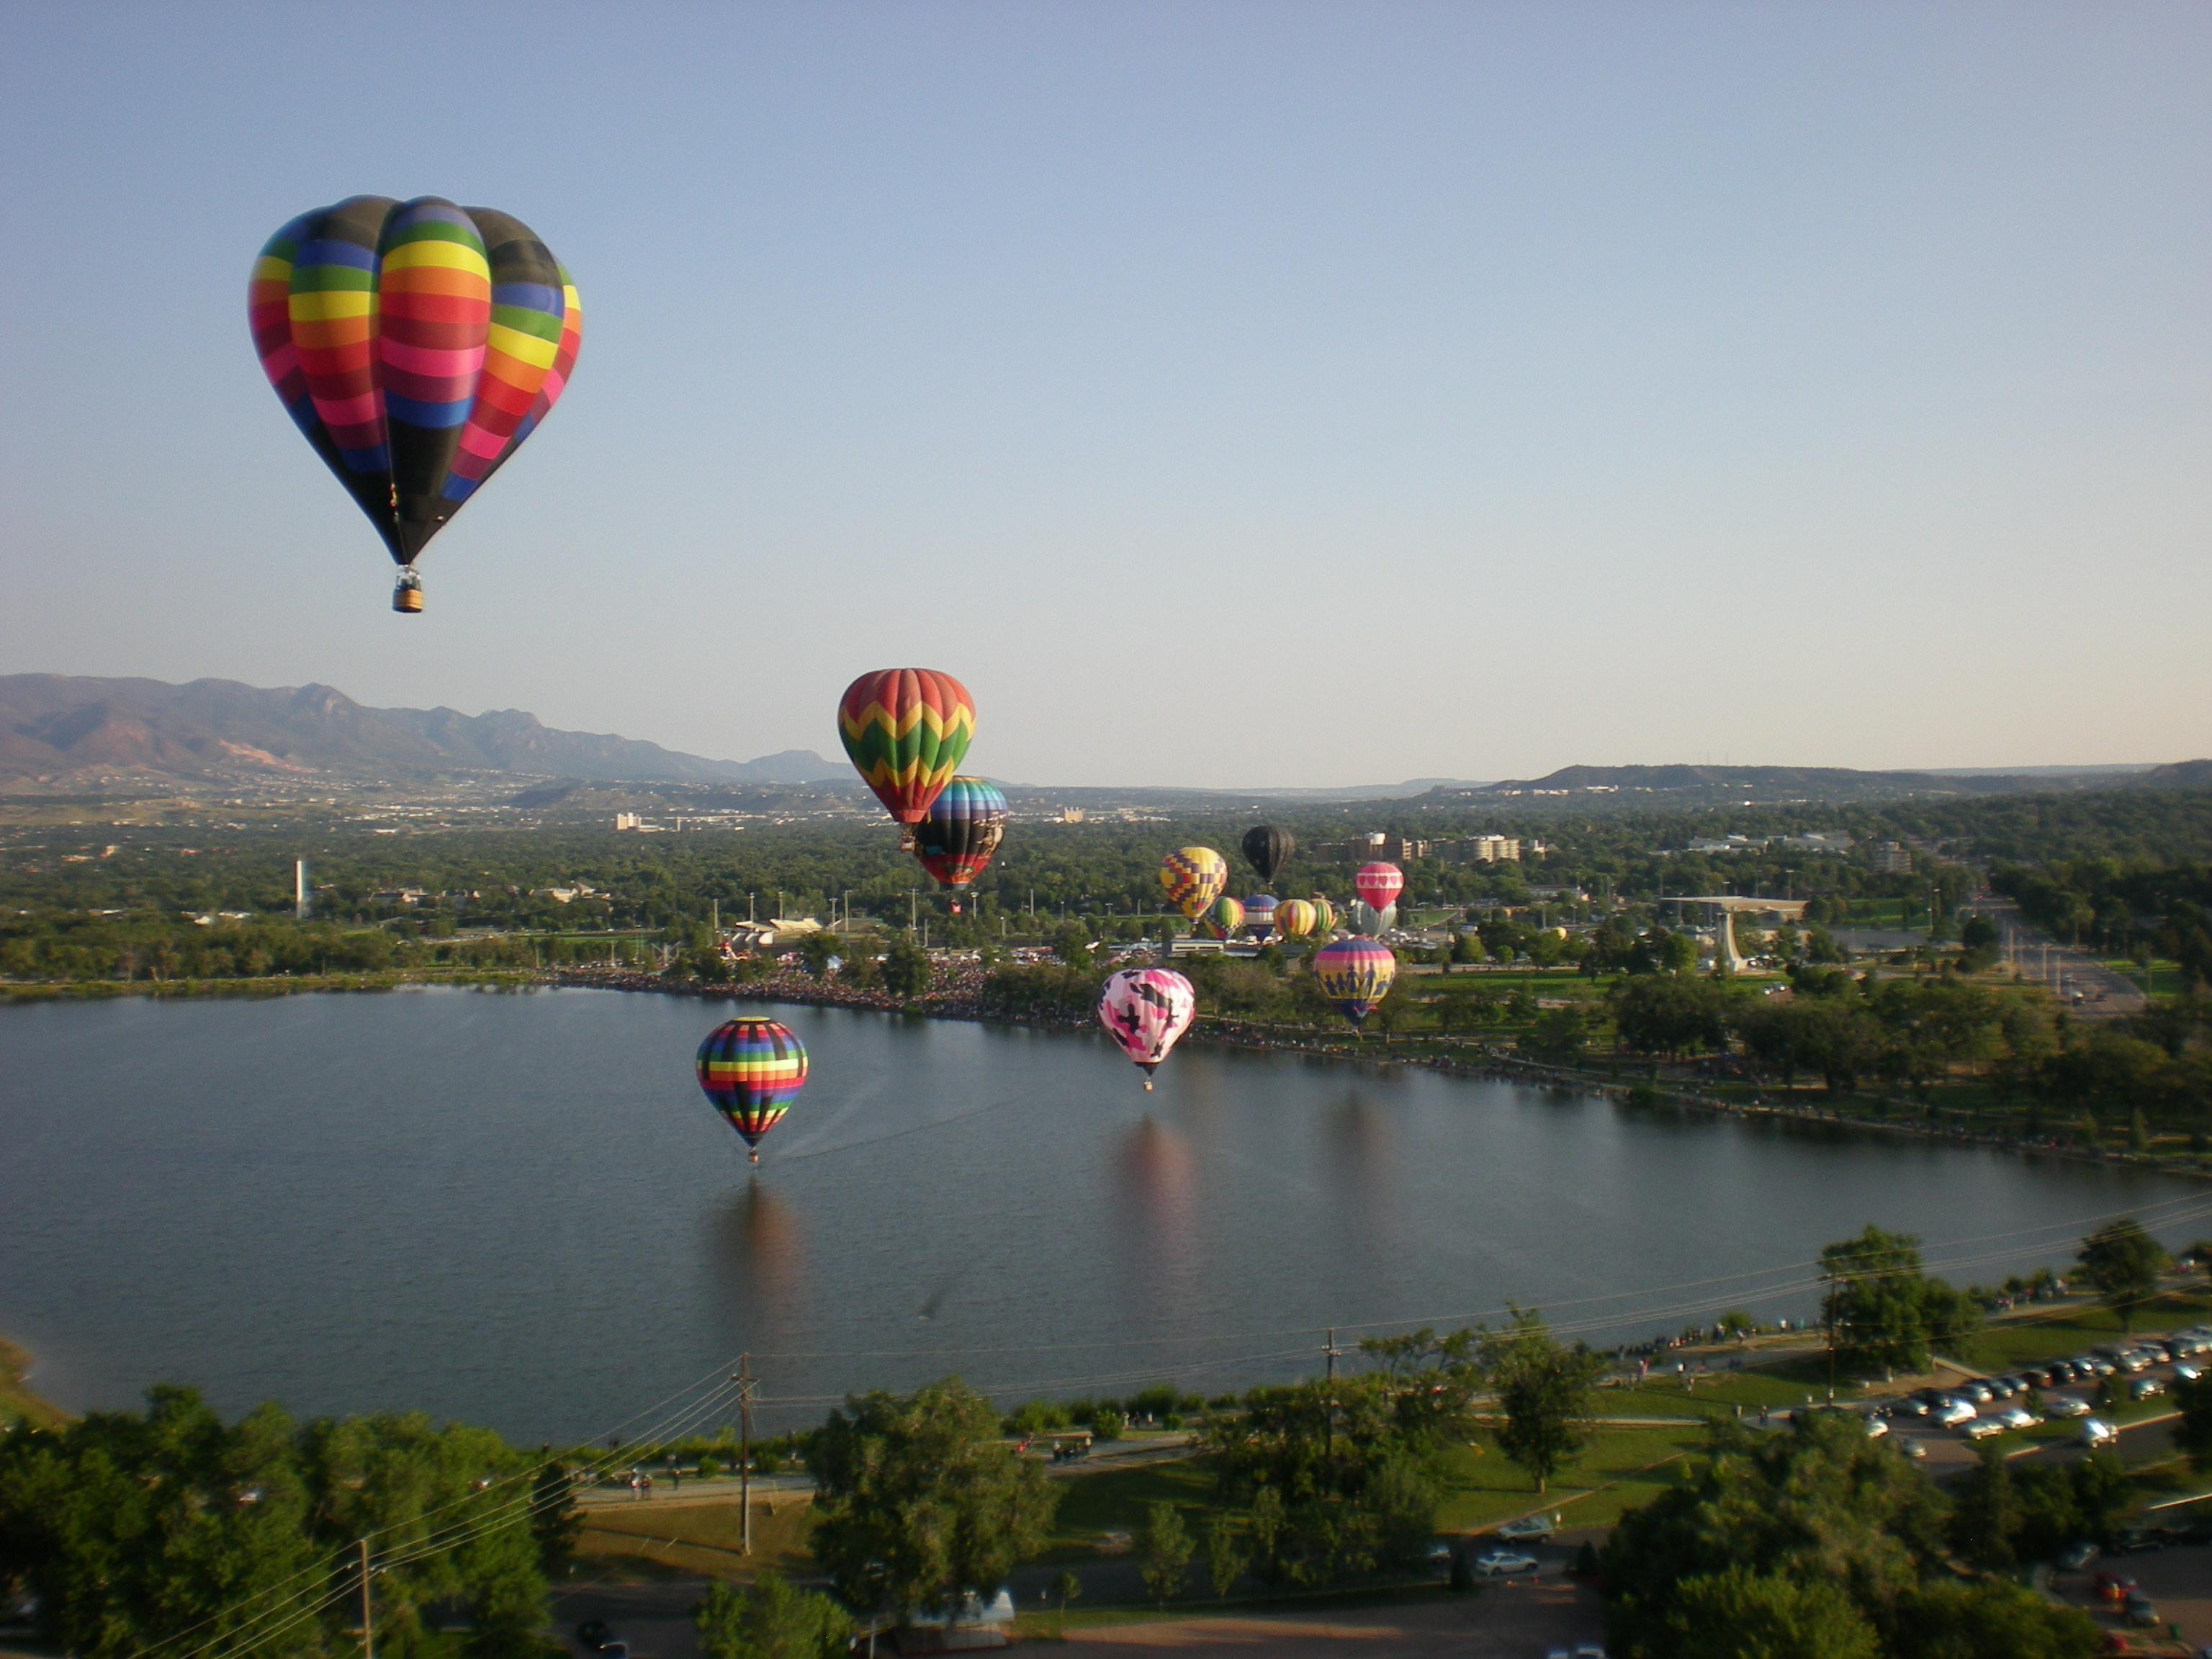 """We had a wonderful time sponsoring the """"Sun Chaser"""" balloon!  Check out the view from the """"Sun Chaser"""" mid flight!"""